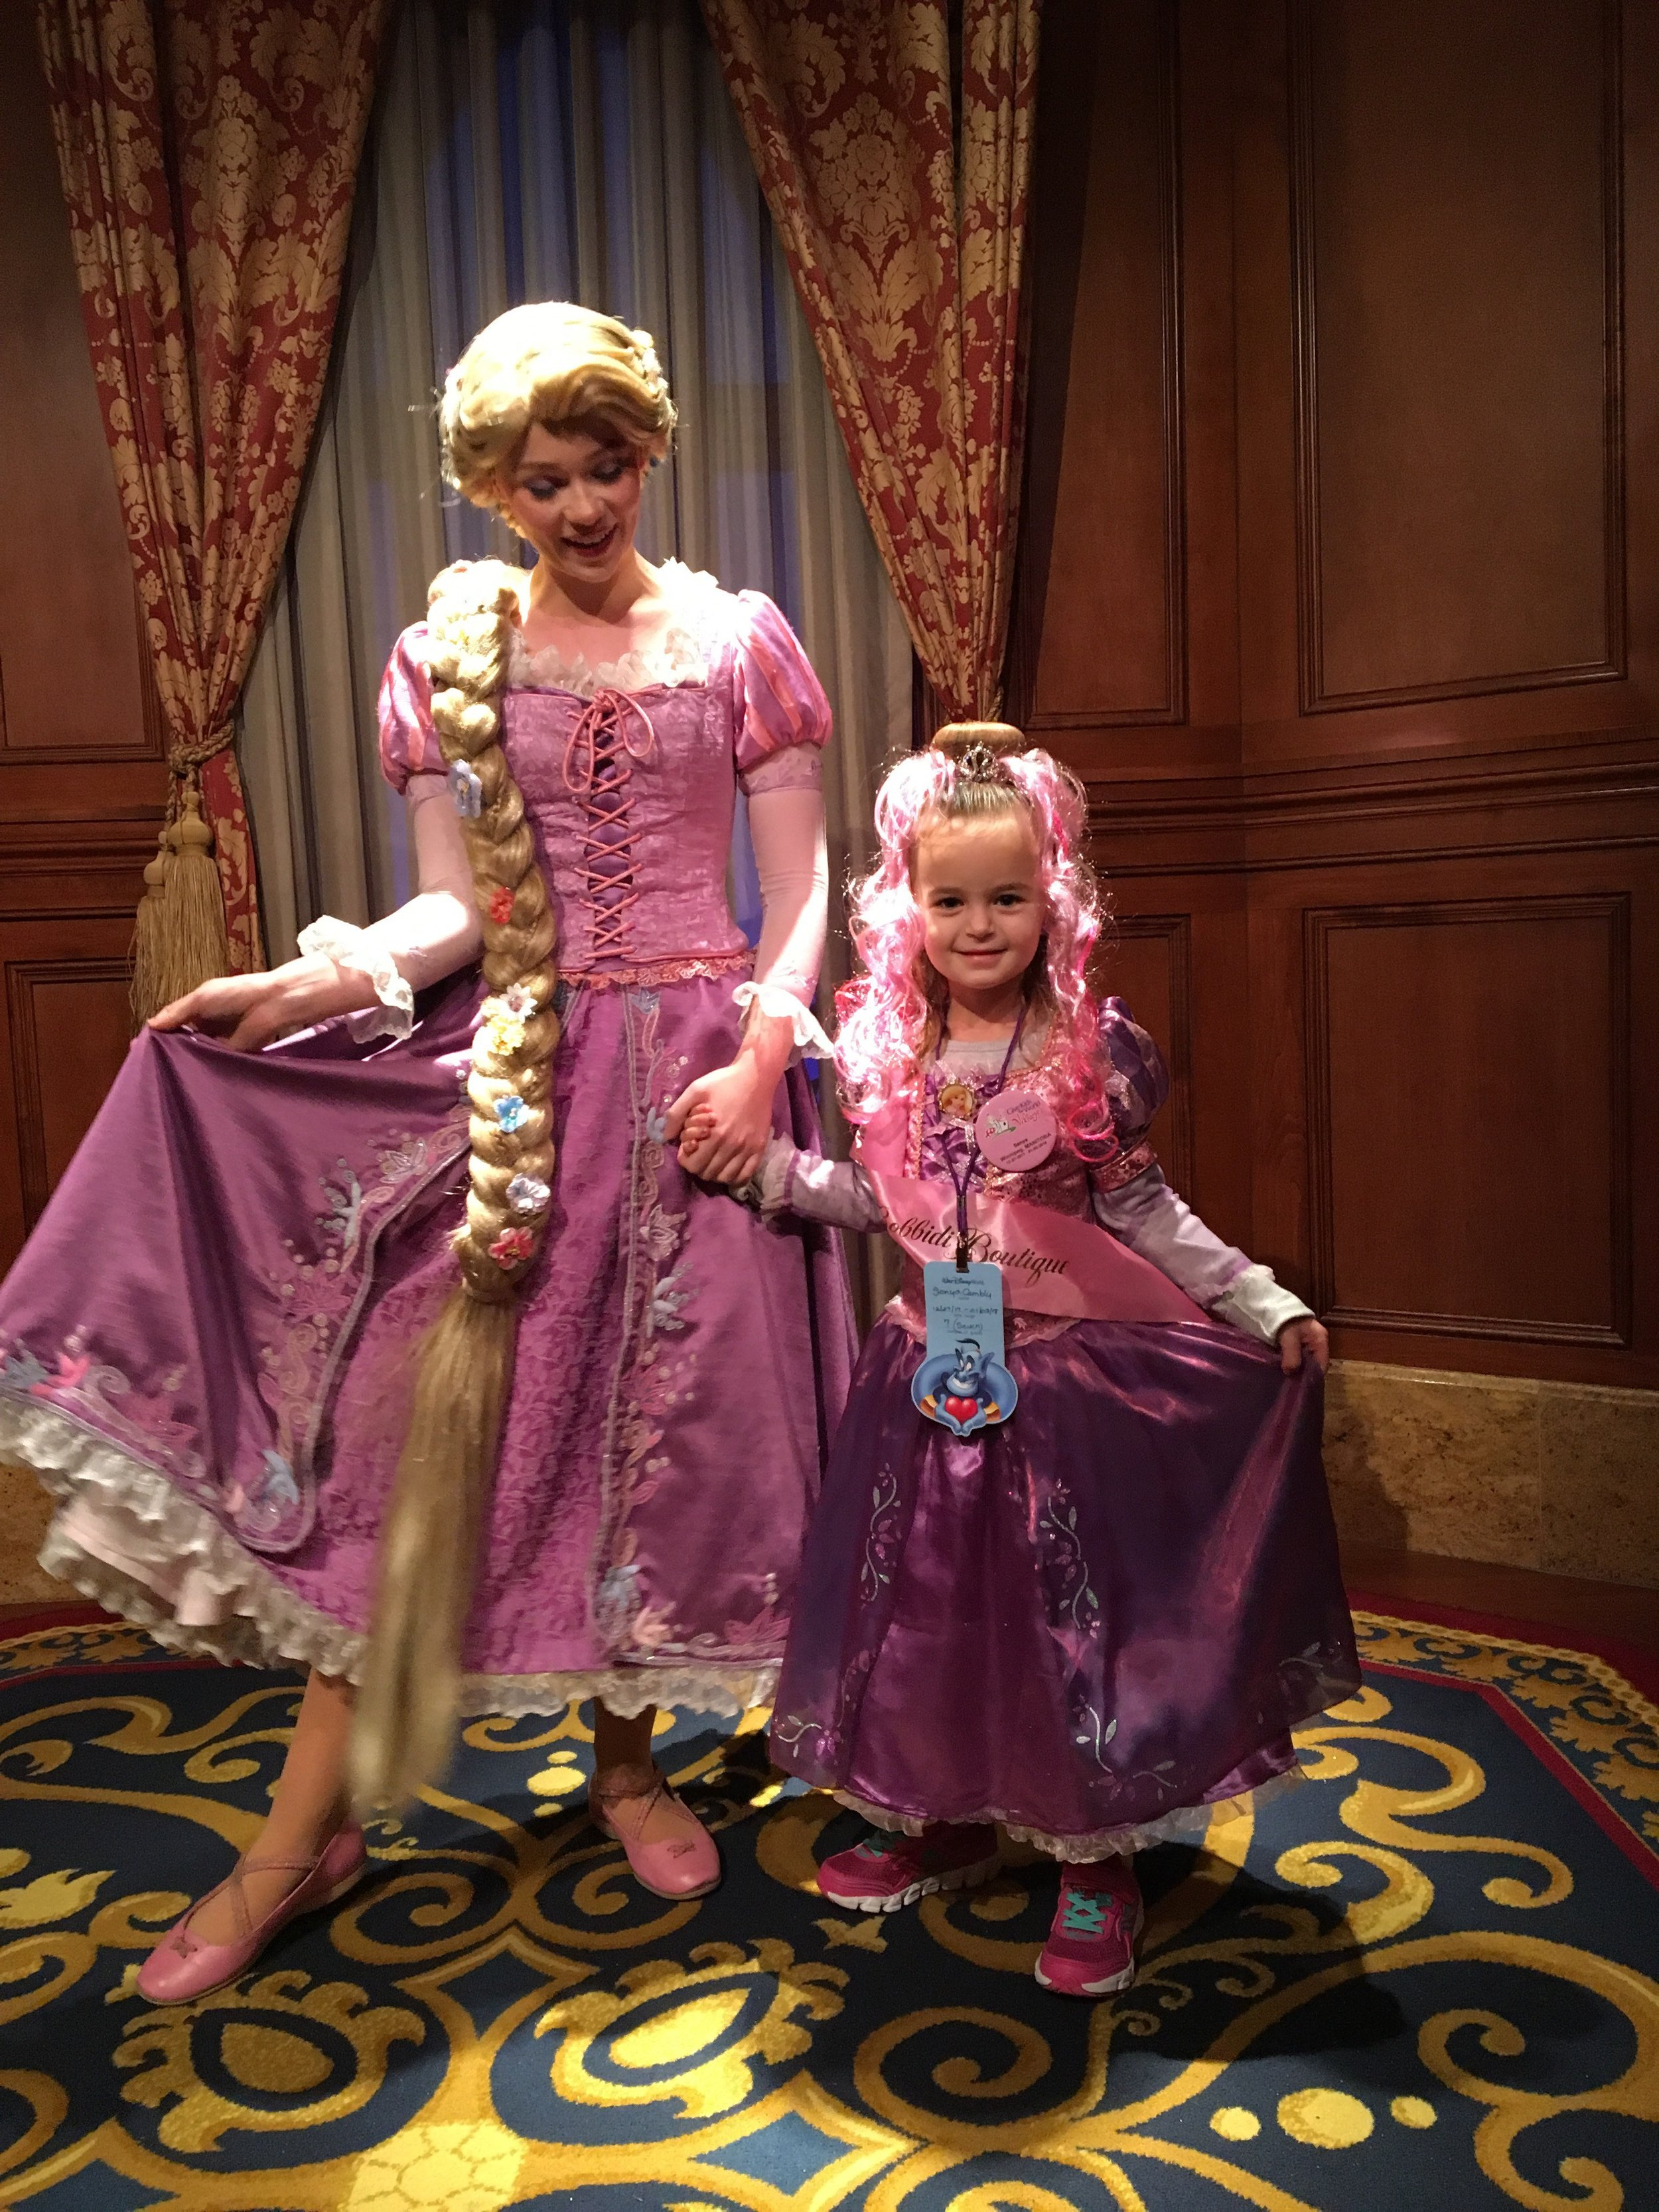 Happily Ever After: - Dream Kid Sonya had a blast at the Bibbidy Bobbity Boutique with the princess makeover of a lifetime!